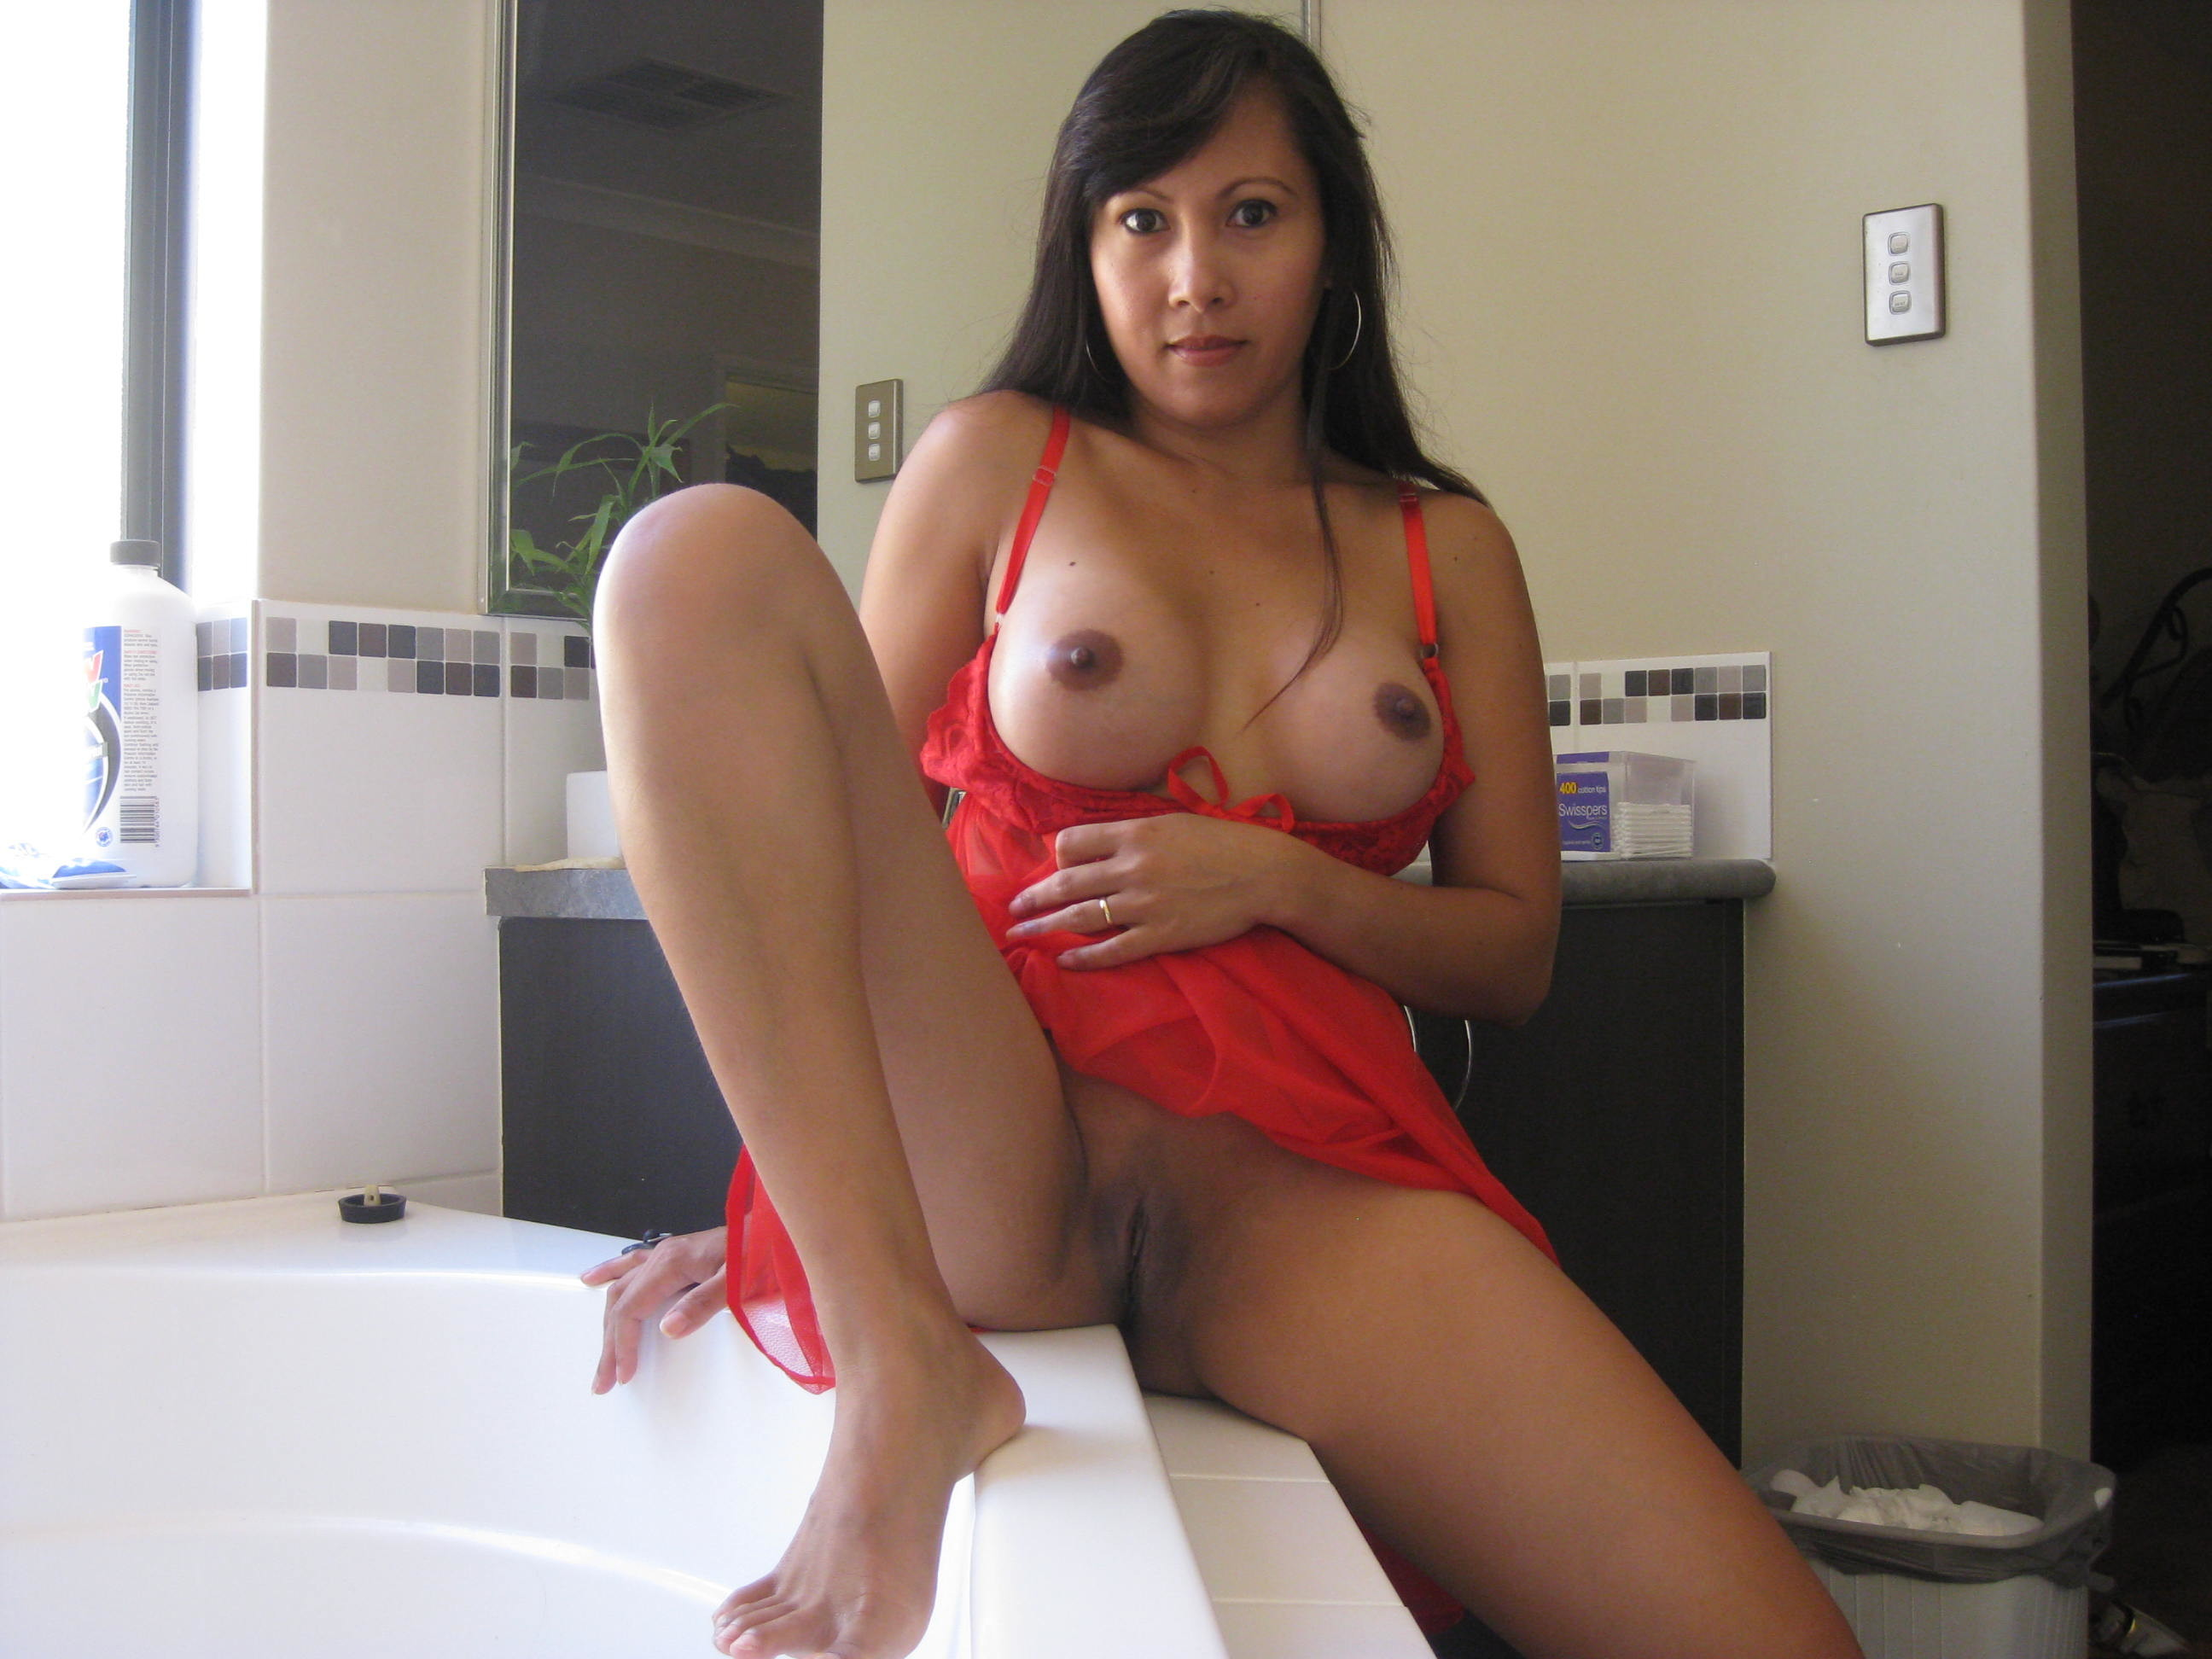 Sexy rude pictures